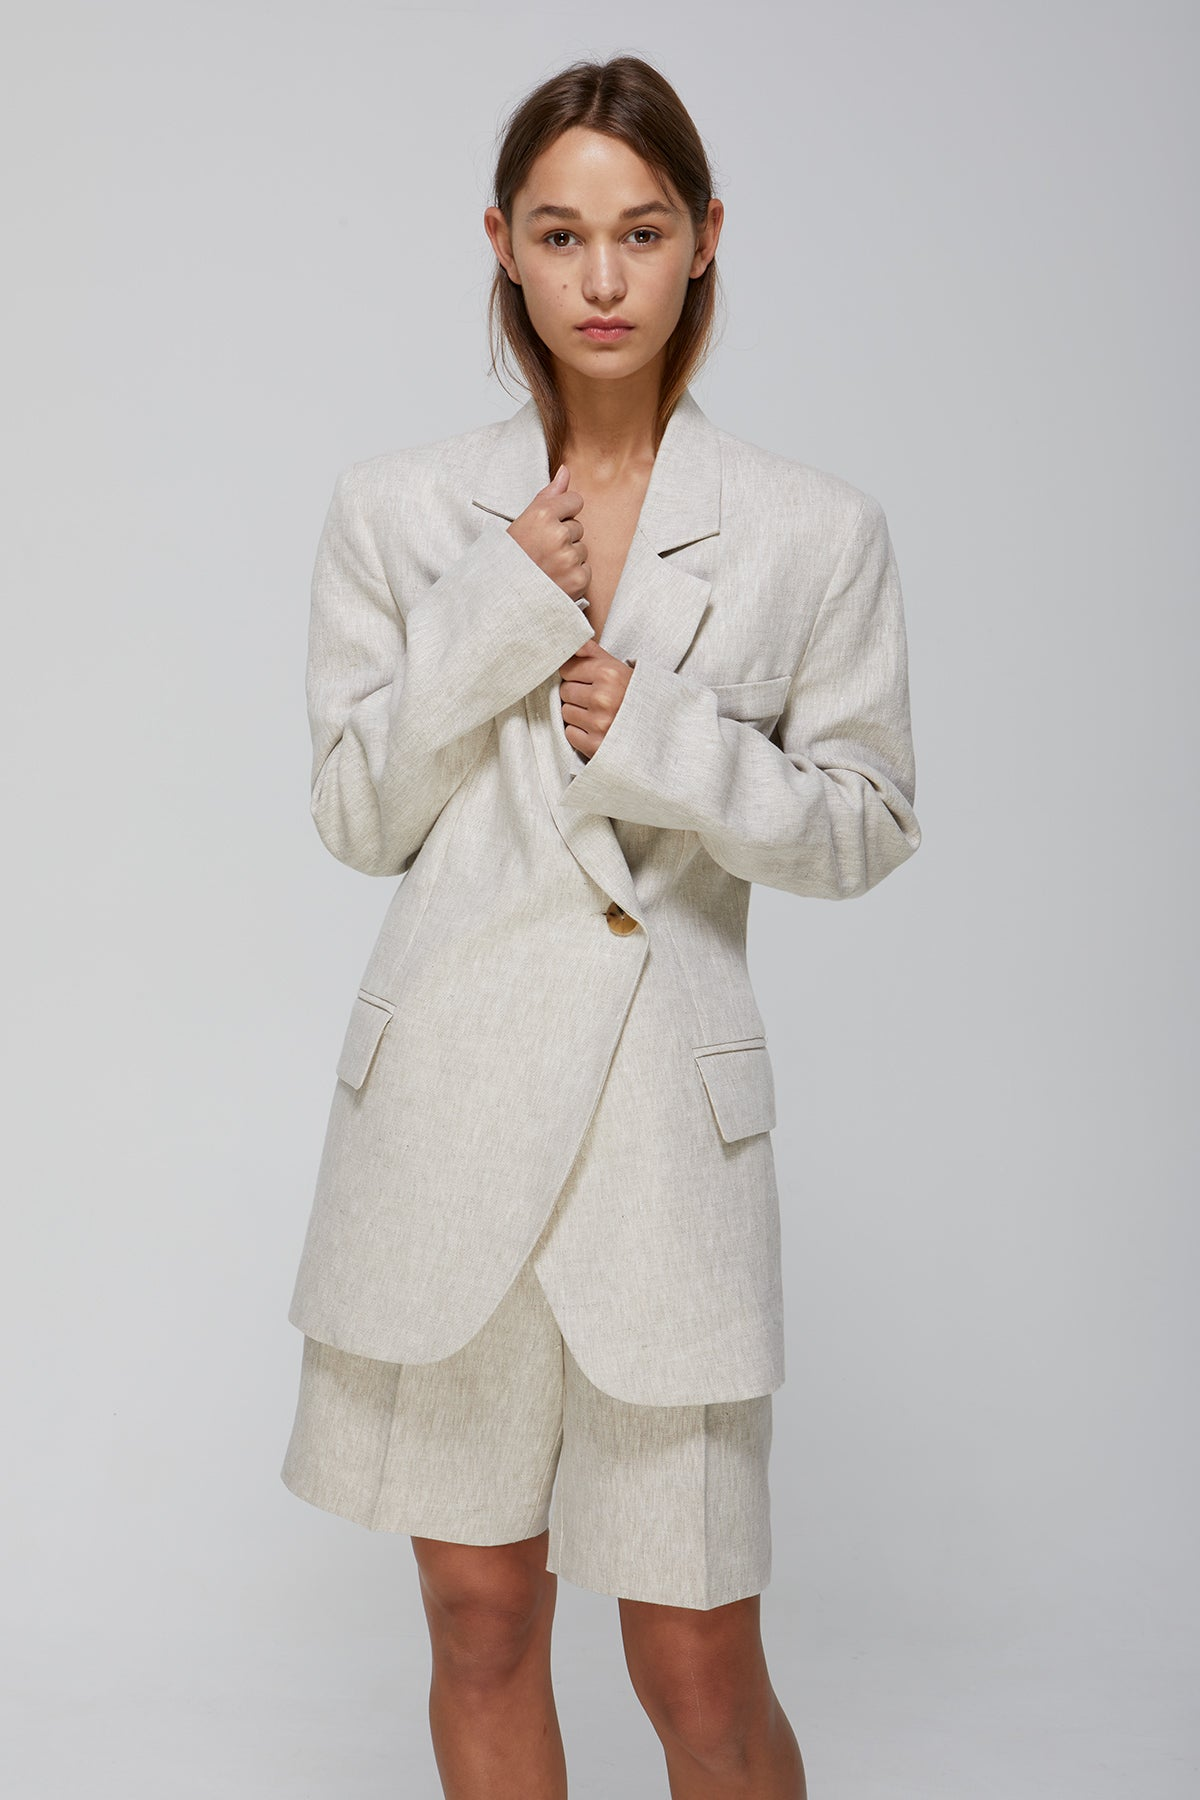 Else Jacket Natural Linen Blazer Gregory SS20 Collection NZ Sustainable Fashion Design